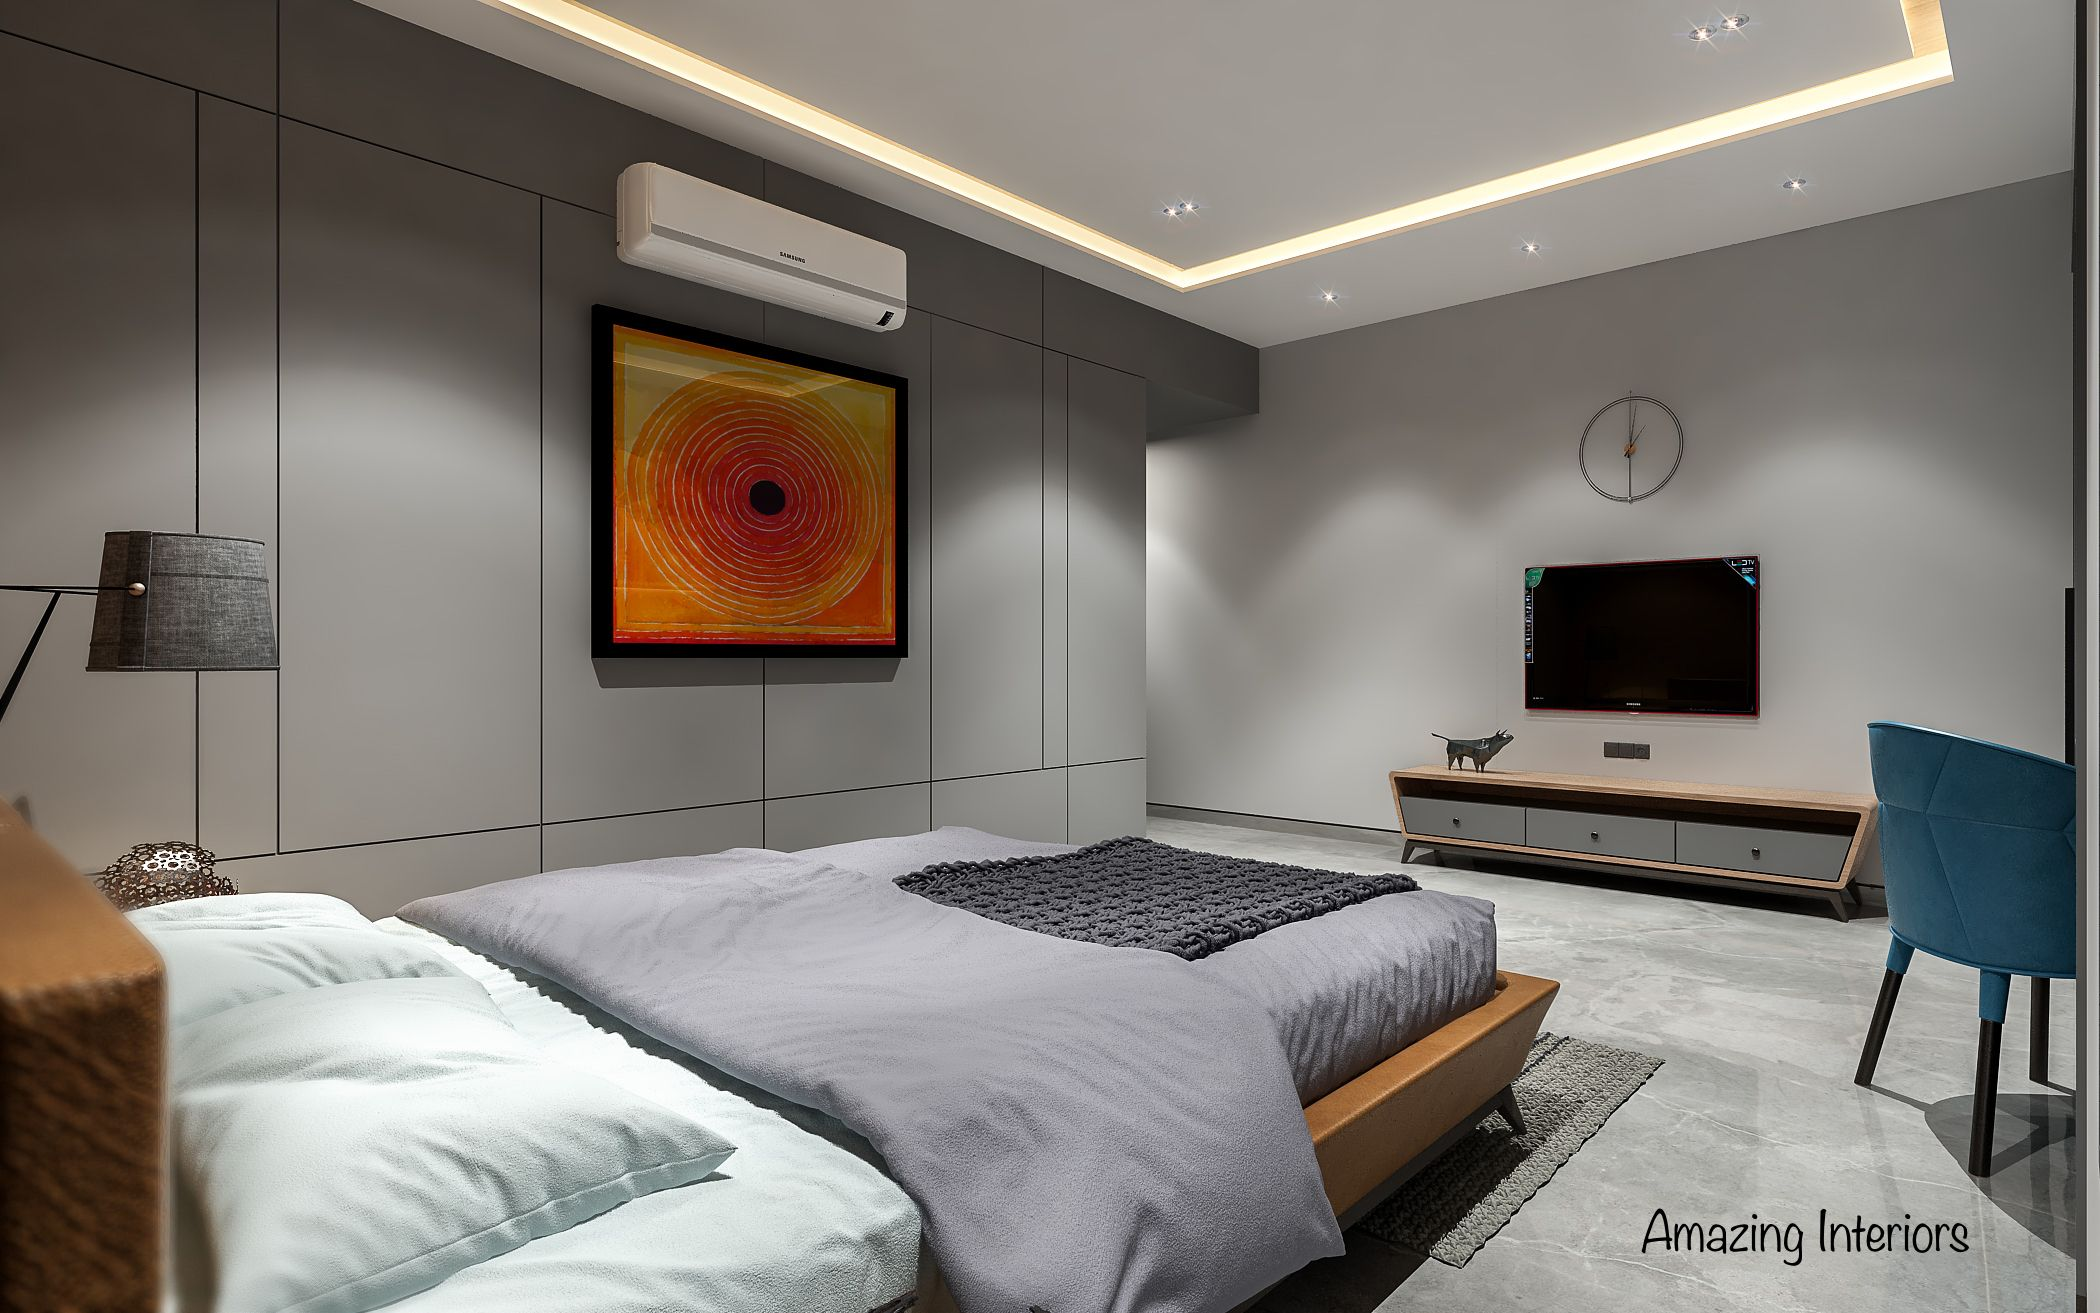 Pin By Vicky Doctor On Amazing Interiors In 2019 Living Room Wall Designs Living Room Designs